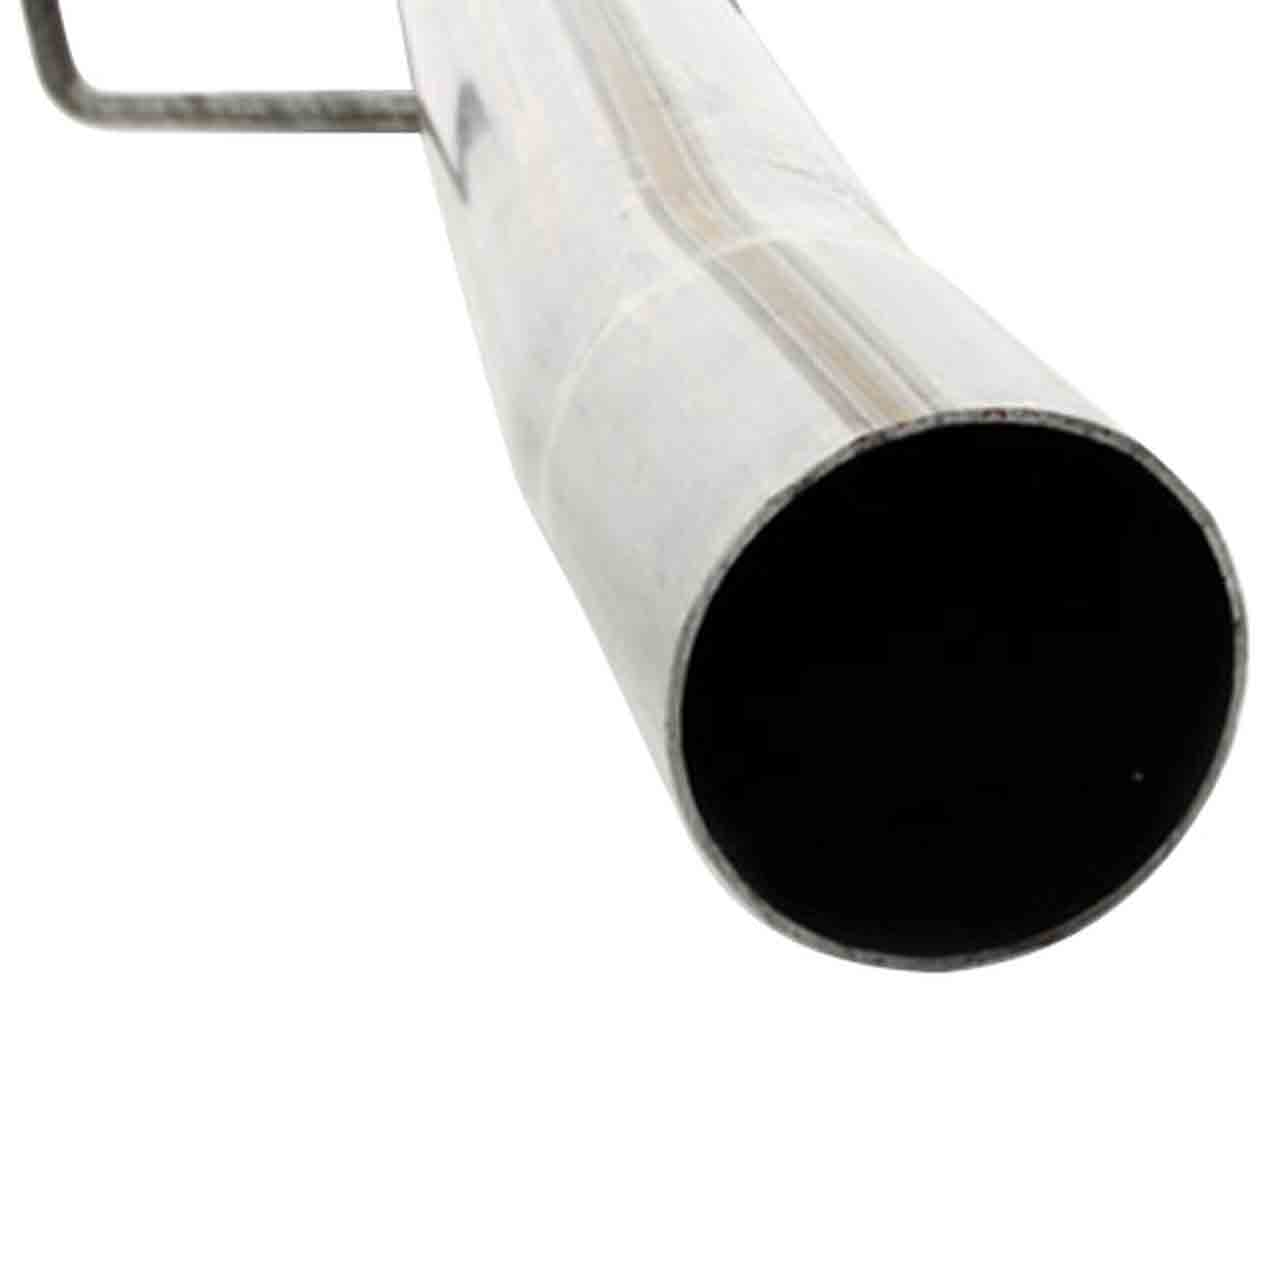 Discovery 3 Tdv6 Guarnizione Esr3737 De Cat Down Pipe Terrafirma GR2-04923